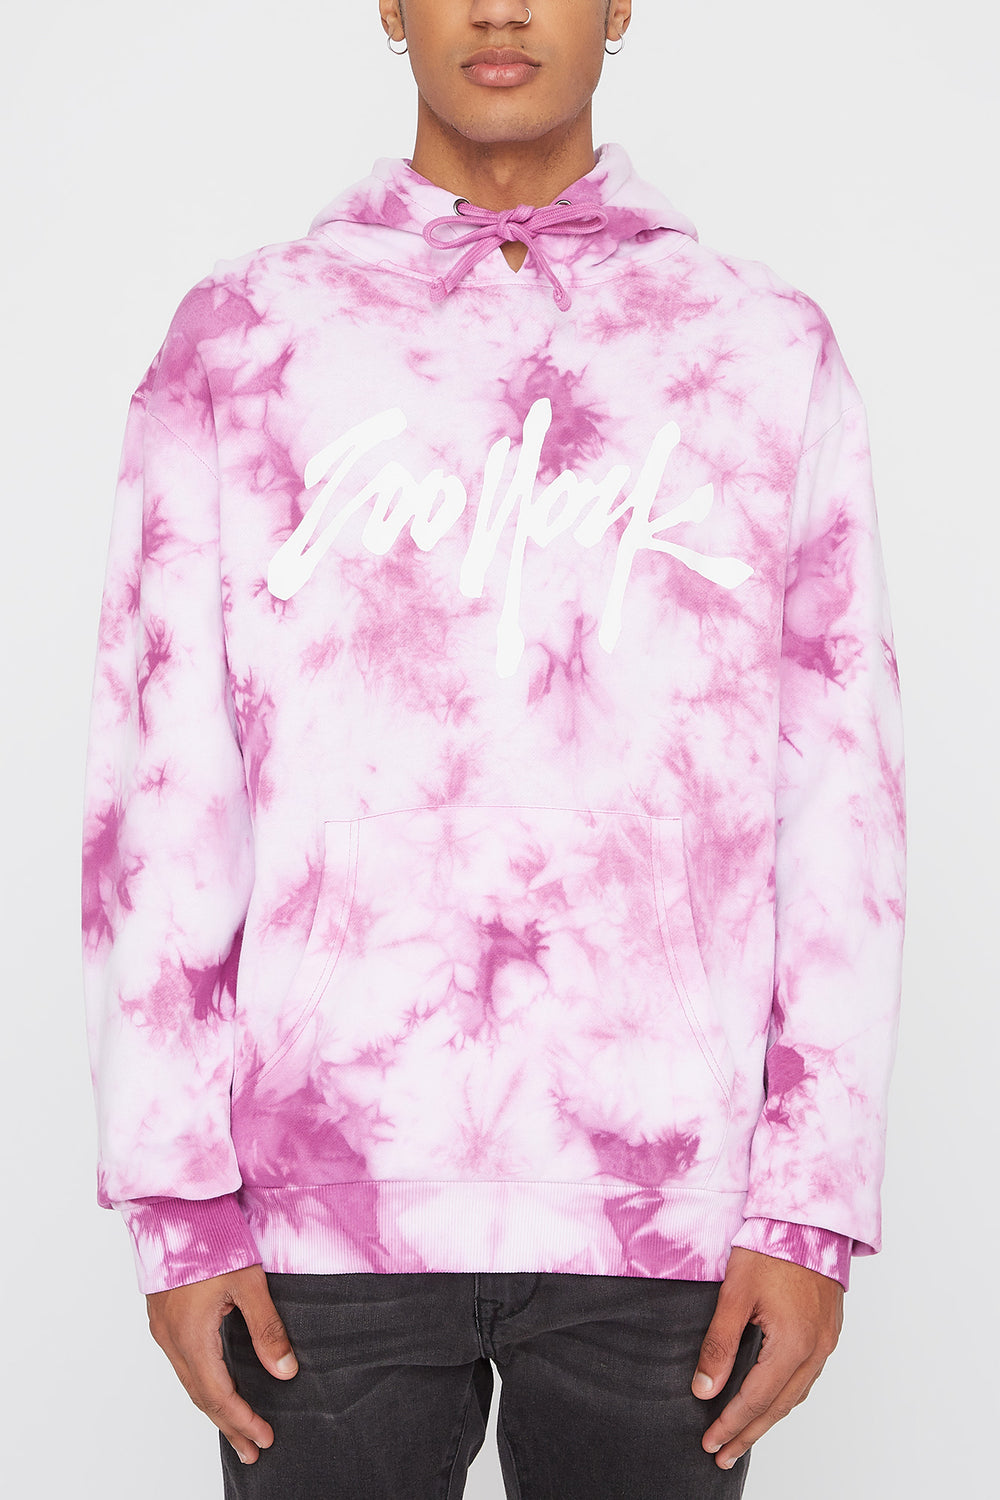 Zoo York Mens Tie-Dye 5 NYC Boroughs Hoodie Purple